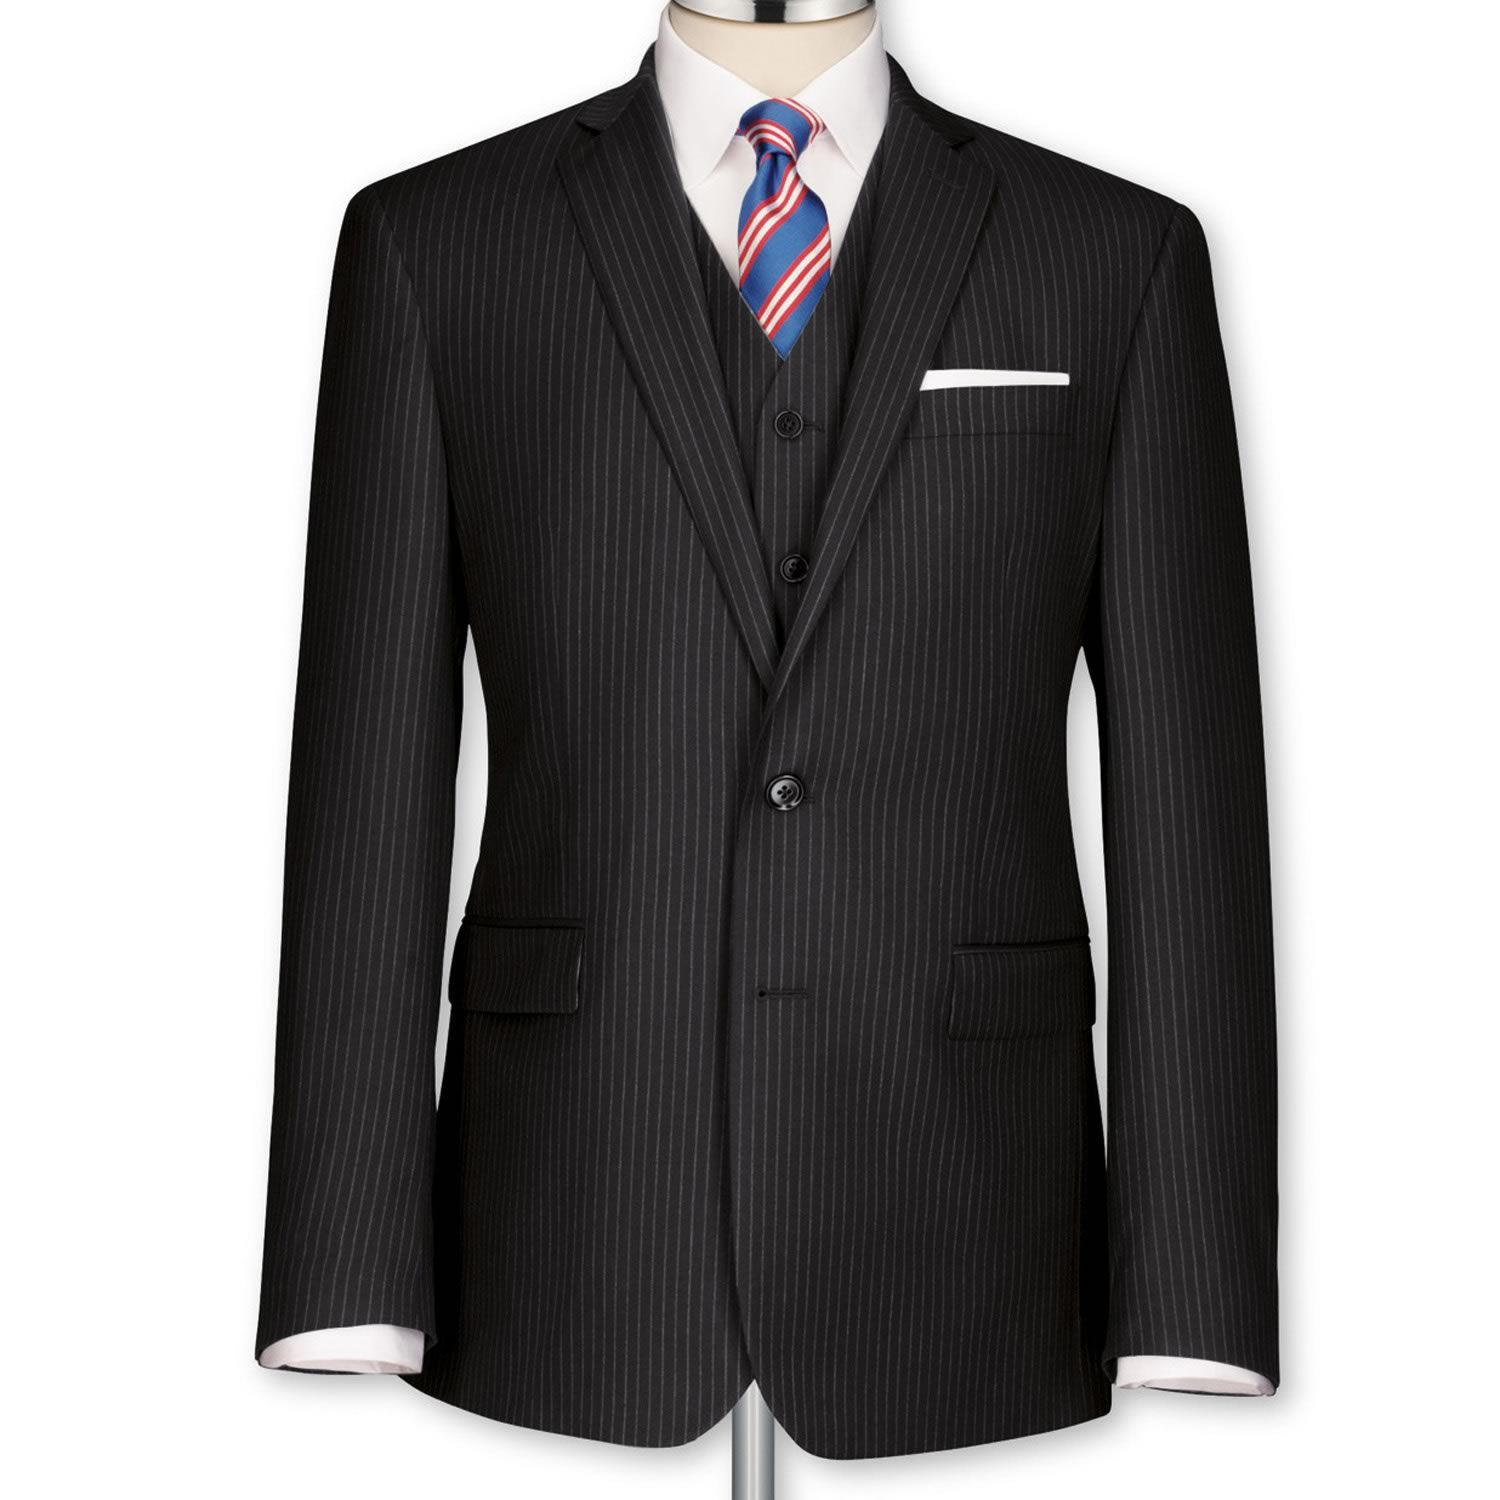 Black fine stripe tailored fit suit | Men's business suits ...